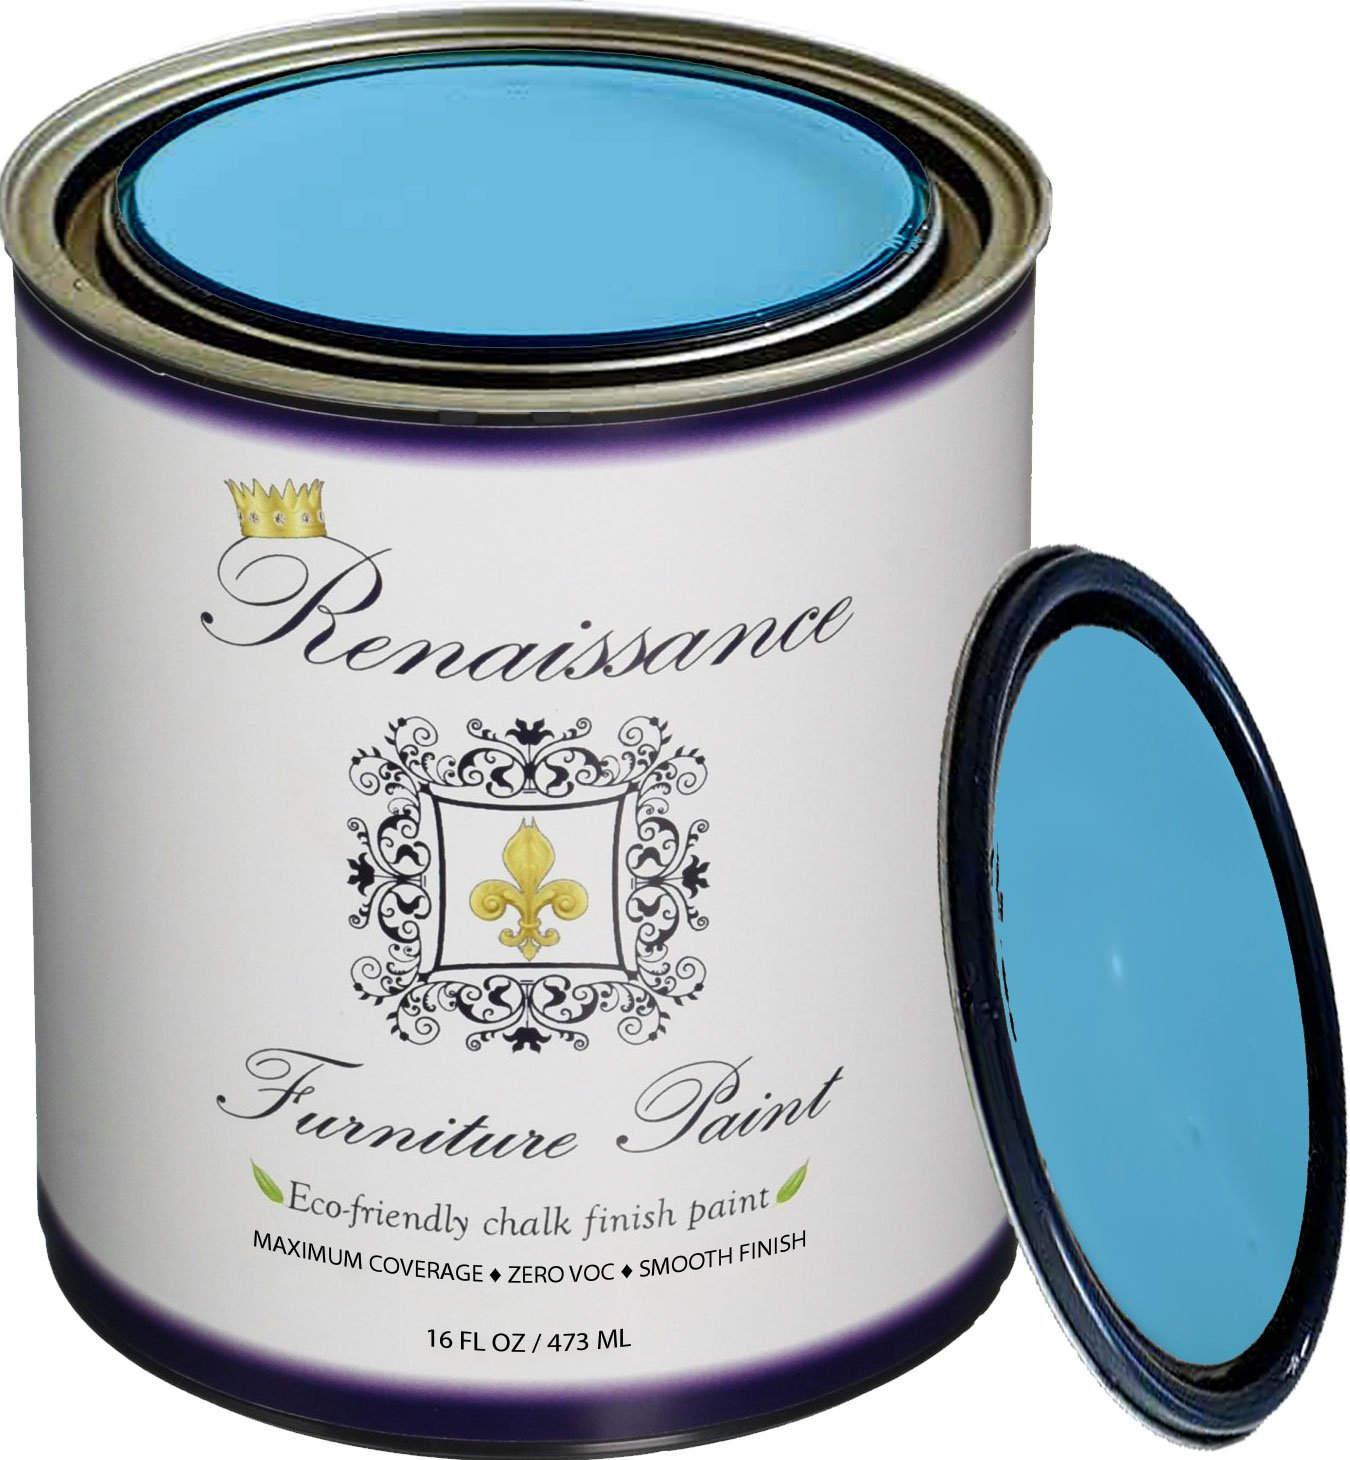 Renaissance Chalk Finish Paint - 1 Pint - Chalk Furniture & Cabinet Paint - Non Toxic, Eco-Friendly, Superior Coverage - Celestial Blue (16oz) Retique It® RFP-P16-CelestialBlue